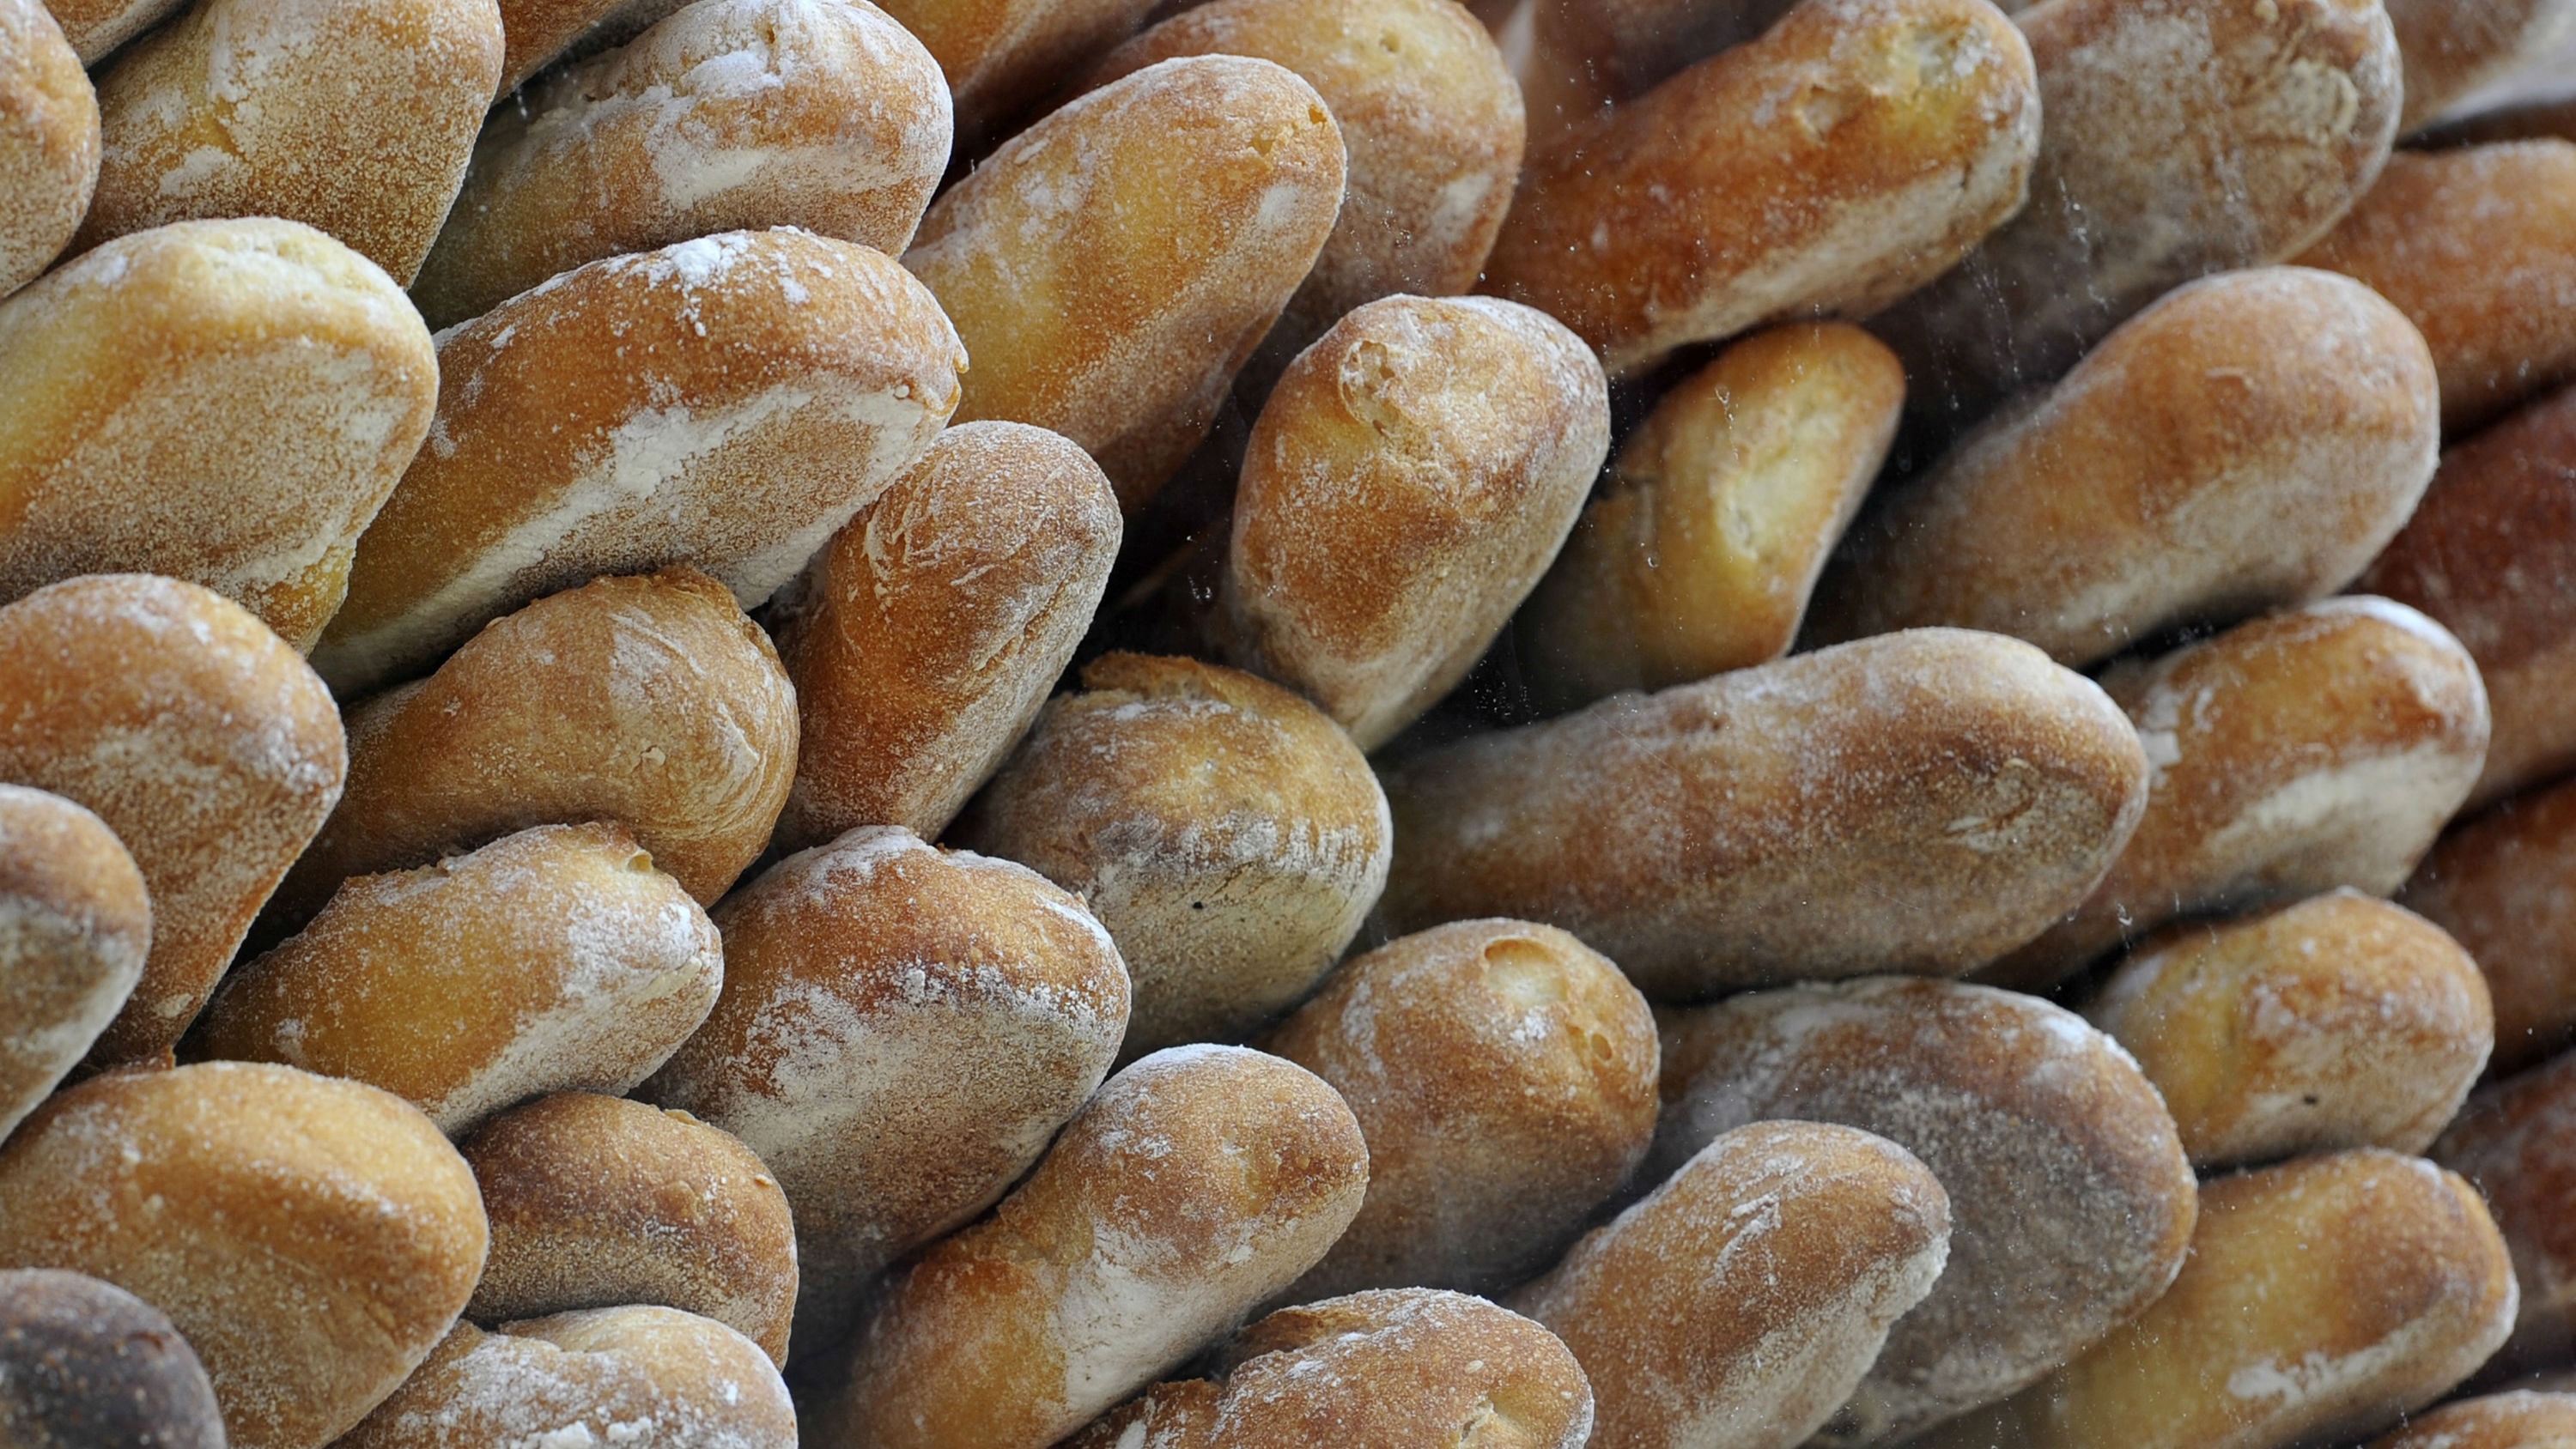 Bread is displayed at a bakery